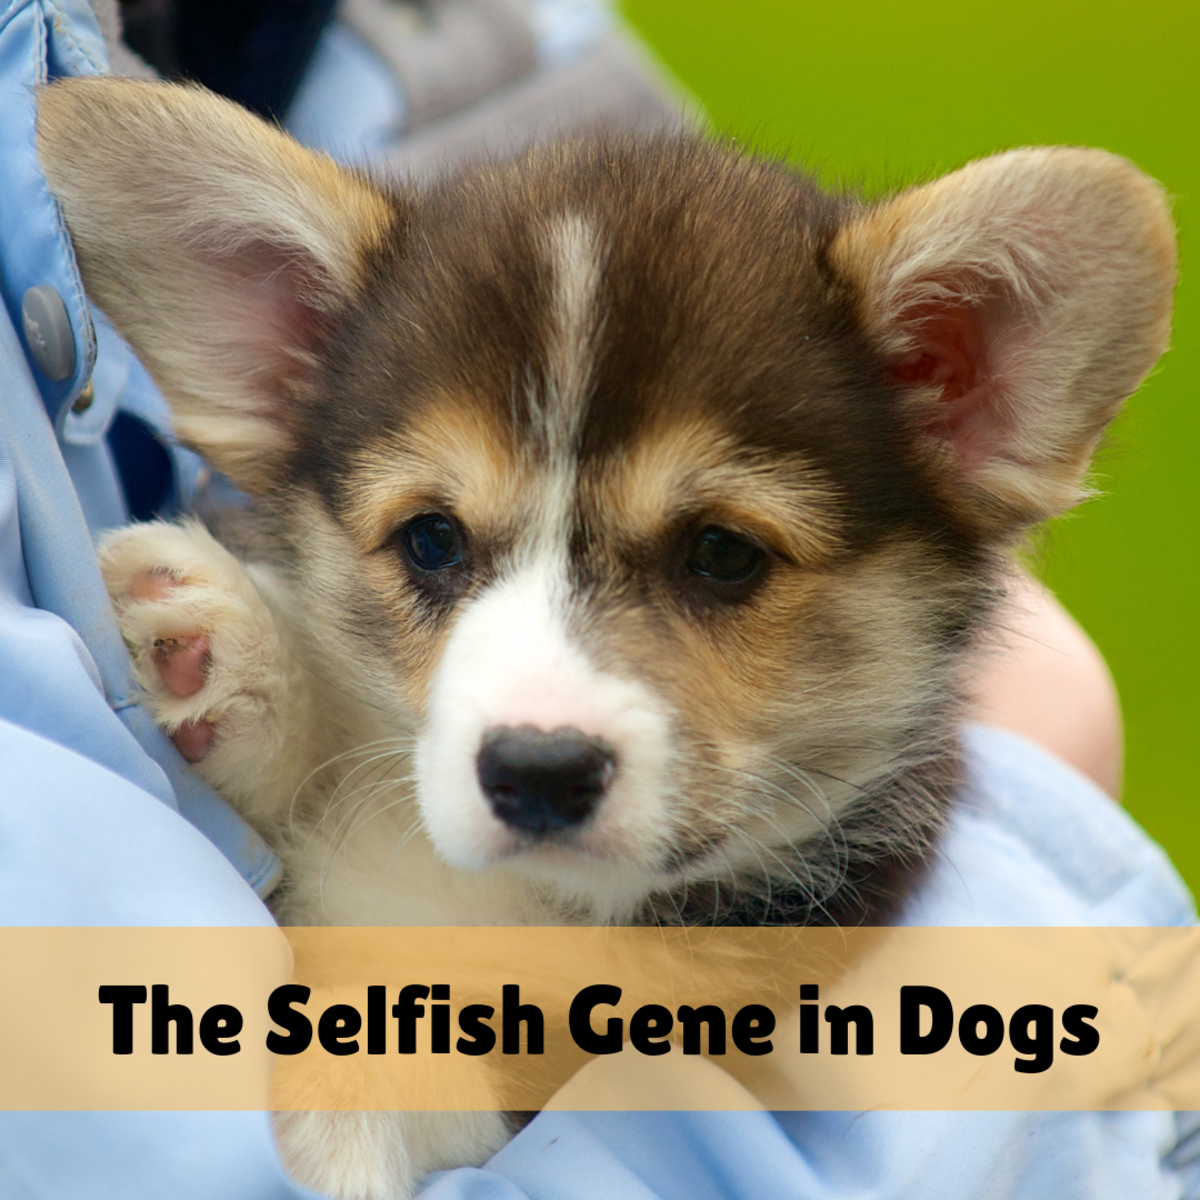 Does the Dog You Adopted Have the Selfish Gene?